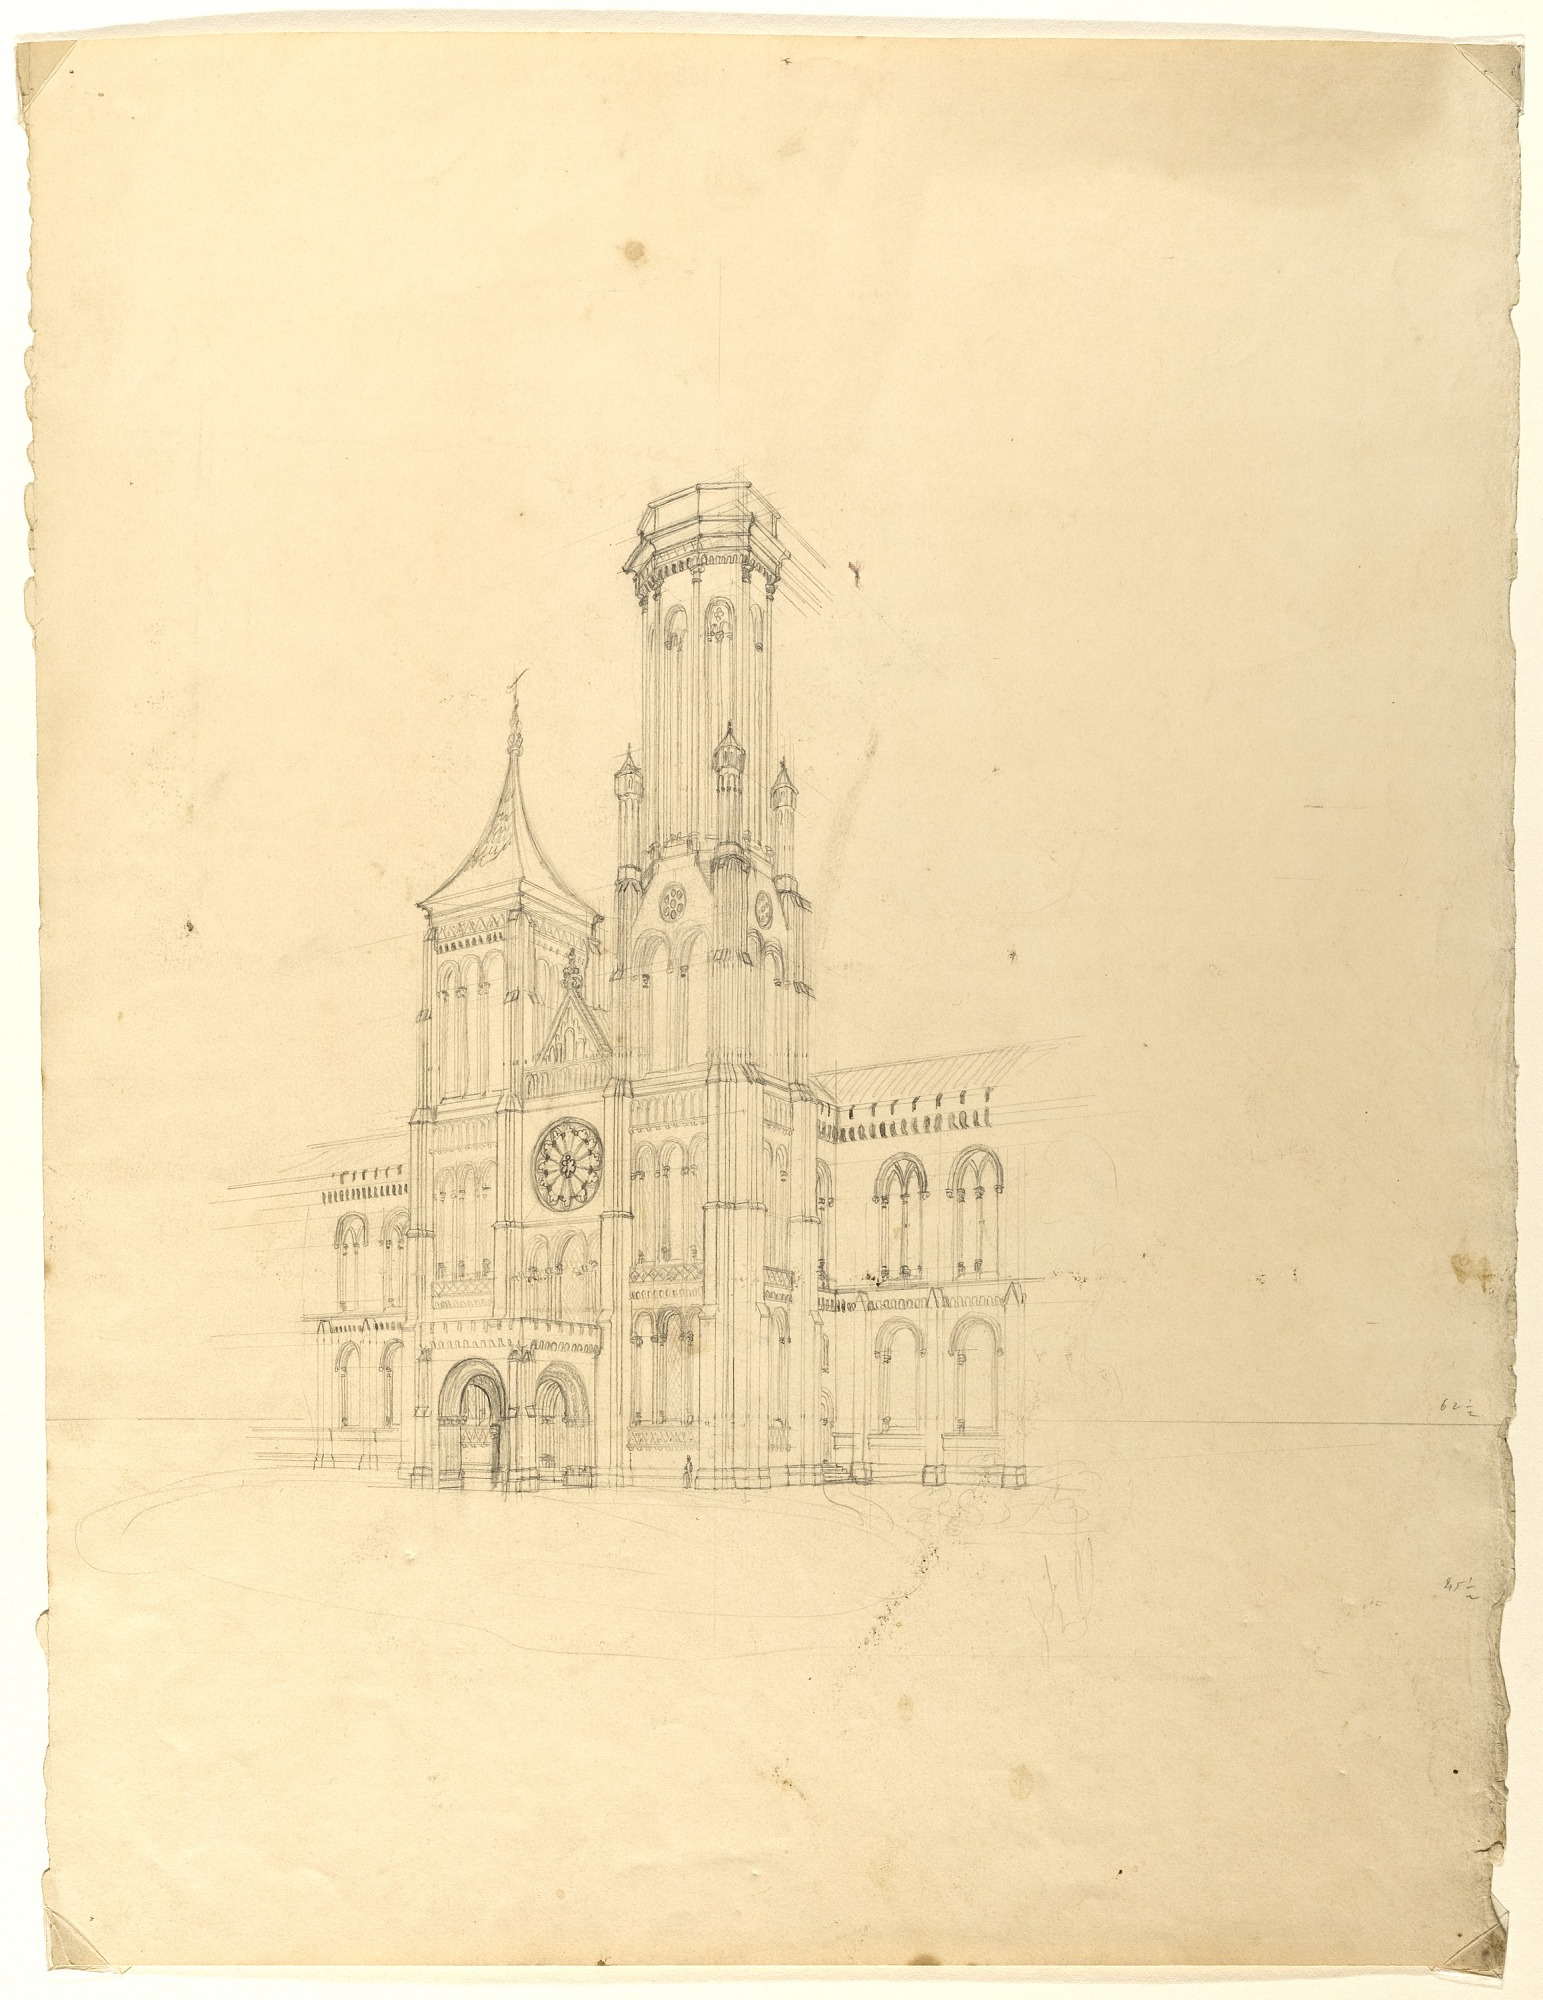 Smithsonian Building Cornerstone Laid, May 1, 1847, Smithsonian Archives - History Div.